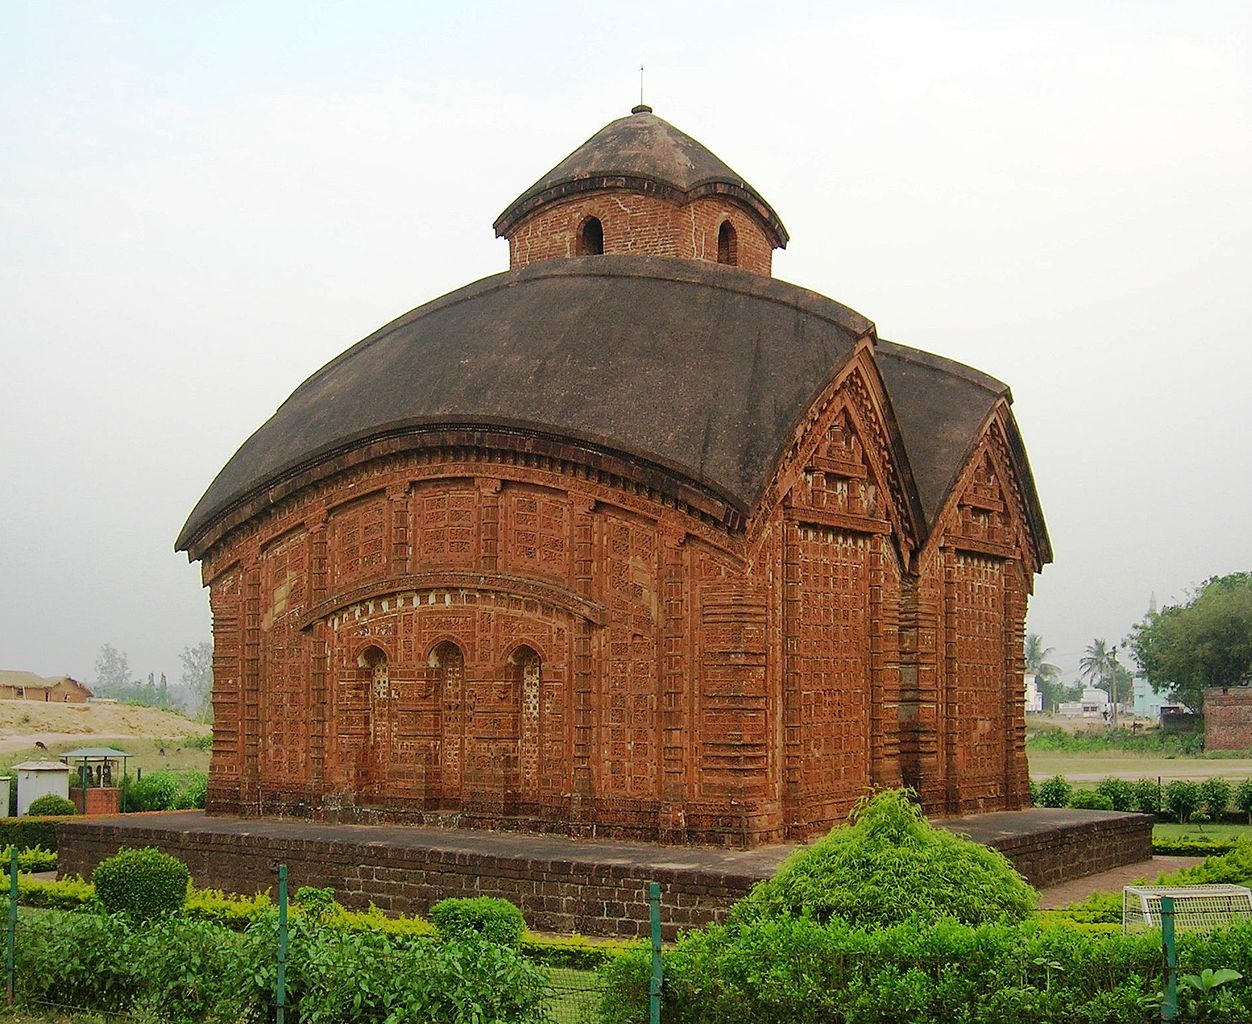 Popular Historical Monuments to See in West Bengal-Jor Bangla Temple